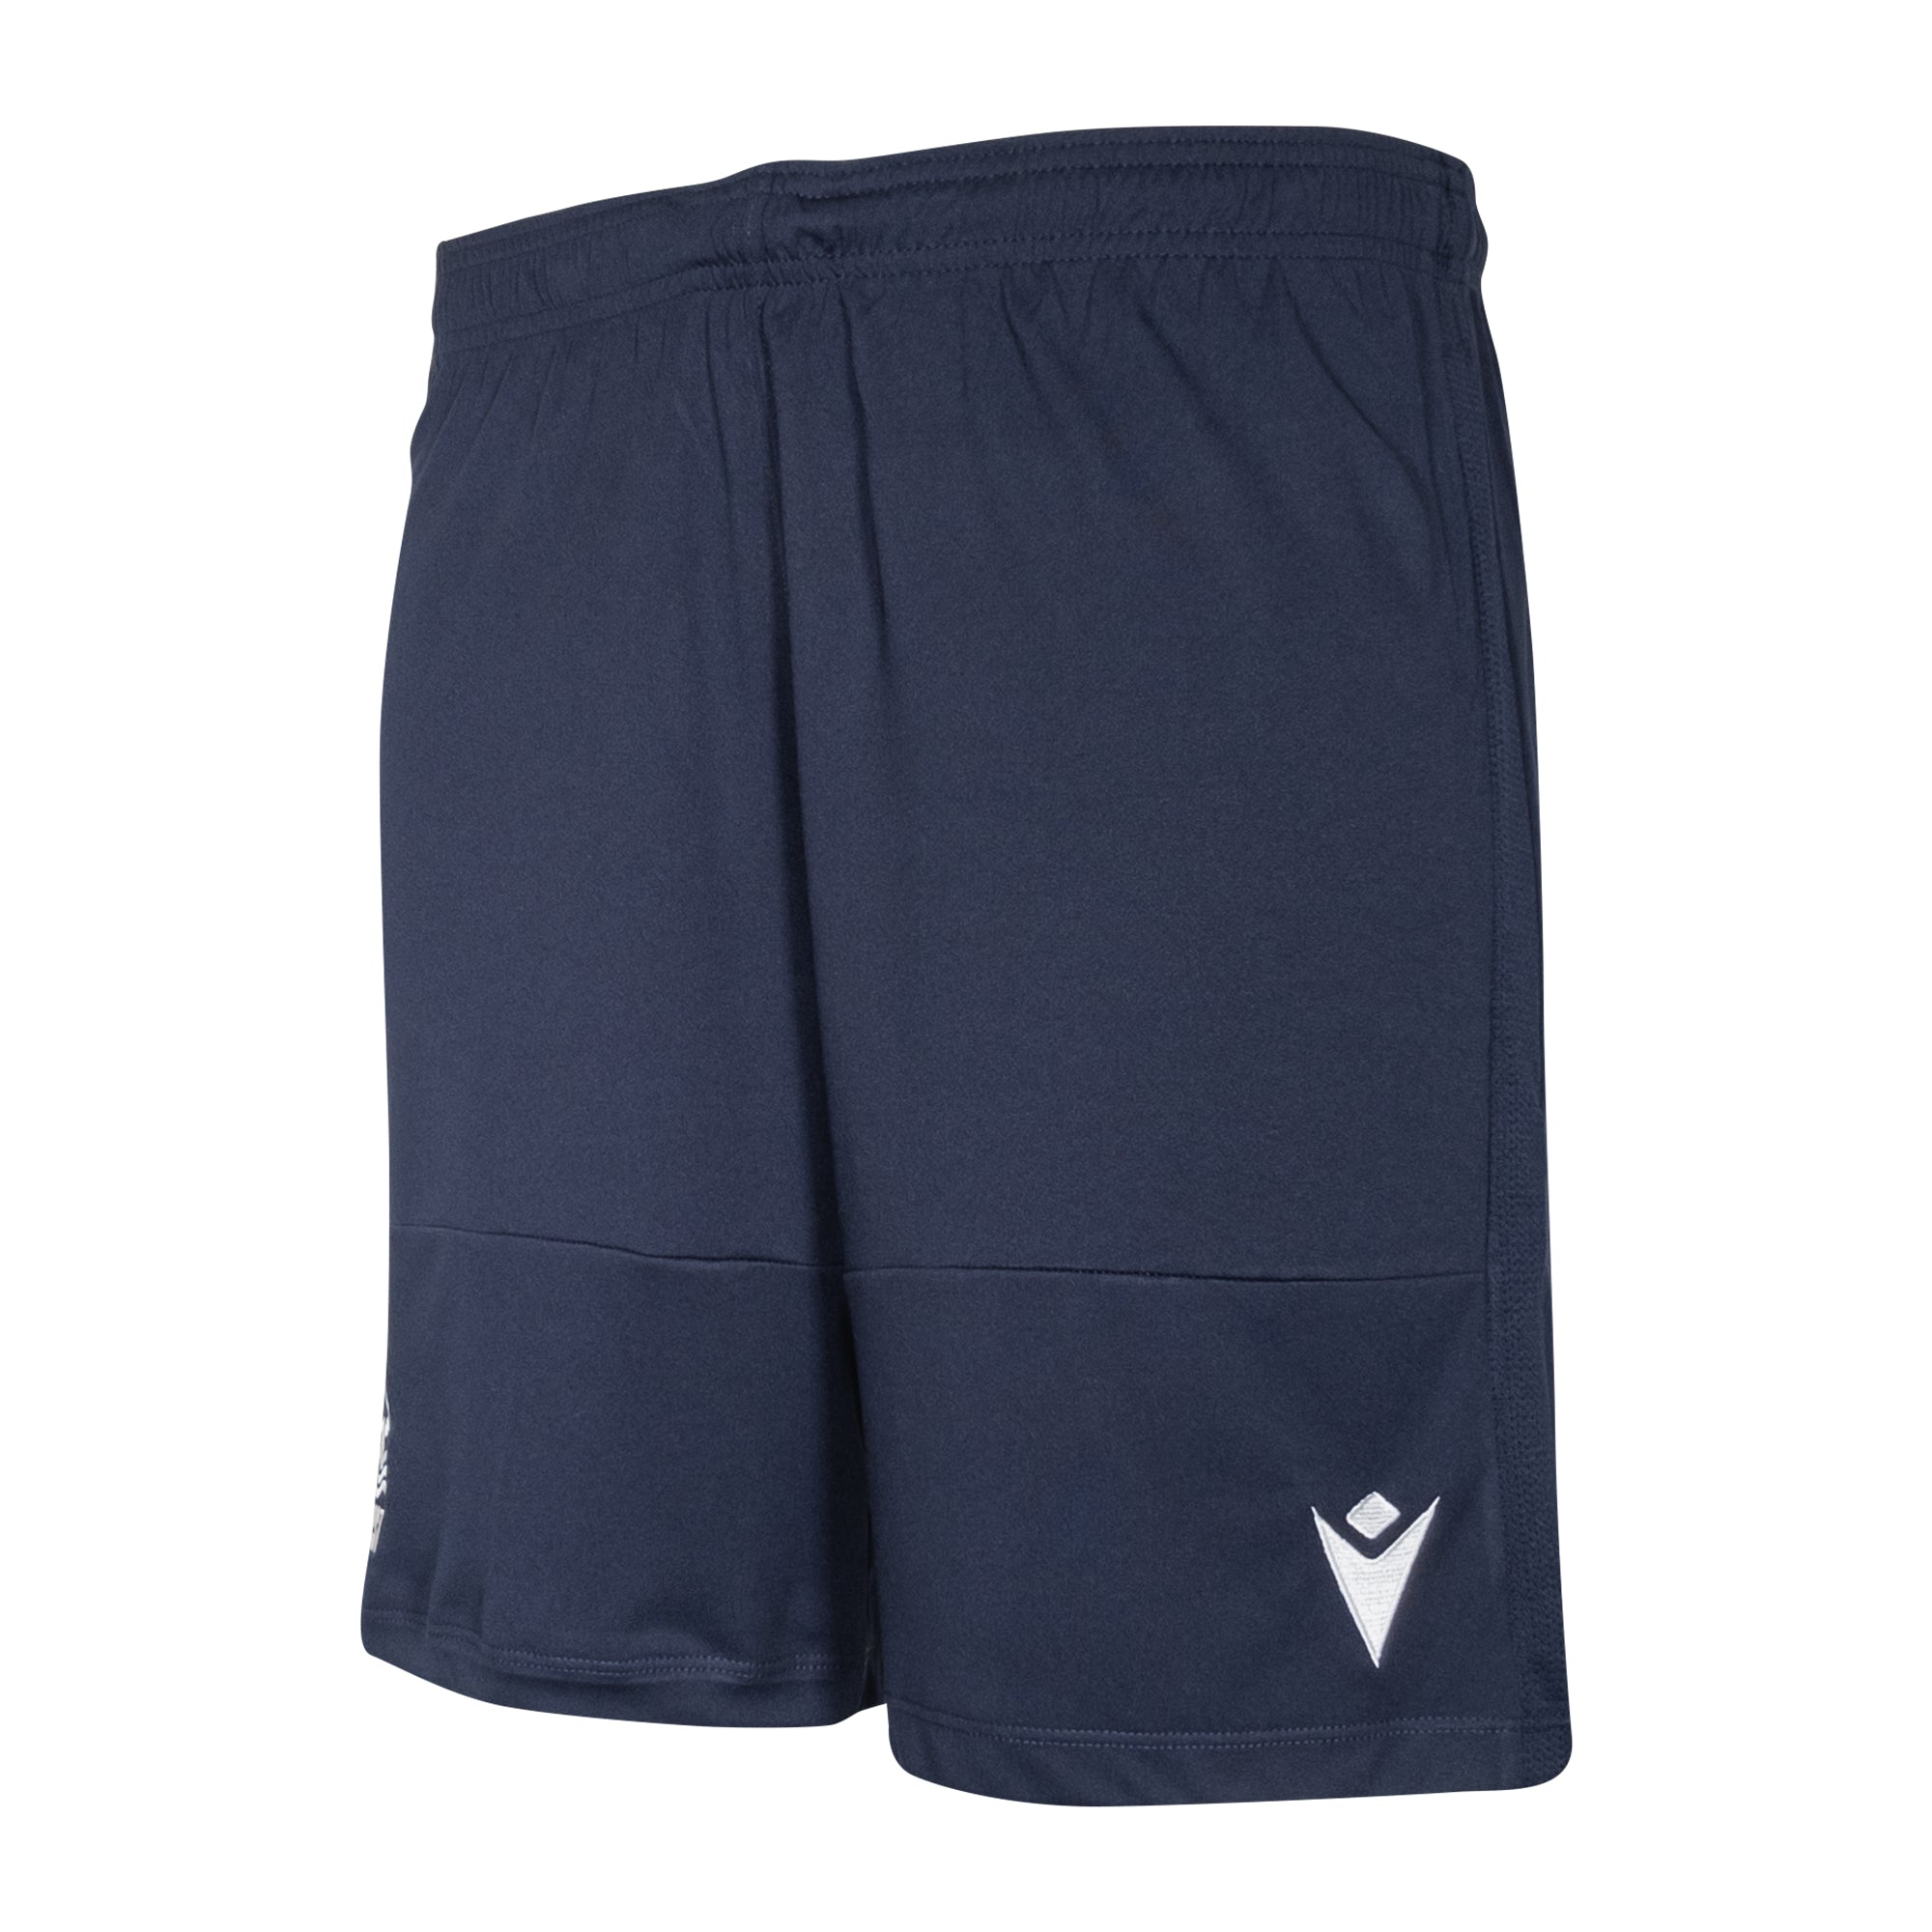 NFFC Junior Training Shorts 2020/21